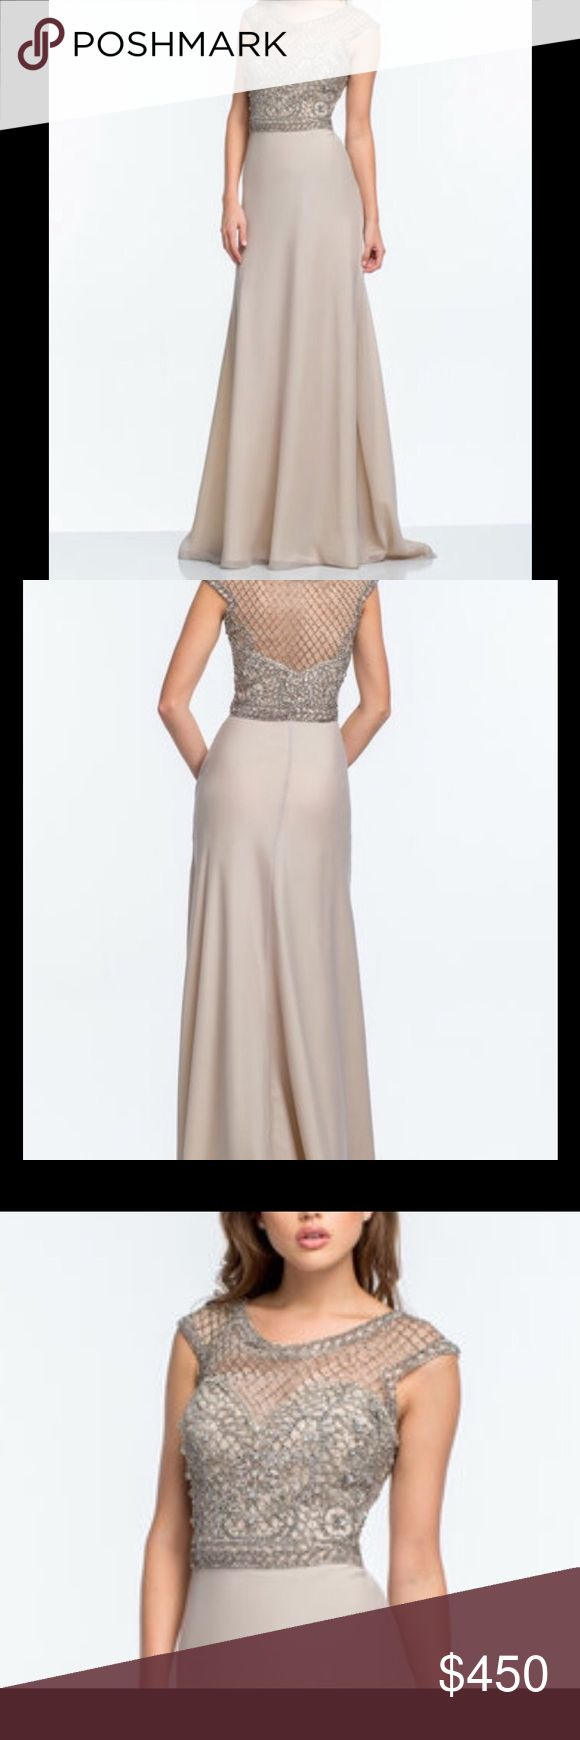 "NWT Terani Couture Embellished Gown Formal Dress Terani Couture   From the moment you step through the door ensure all eyes are on you with the dynamic curve-defining fit of this special occasion look.  60"" Long from high point of shoulder to hem. 7"" tail 100% Polyester  Dry Clean SZ. 14 Retail. $682.00 Brand new with tags. Terani Couture Dresses Wedding"